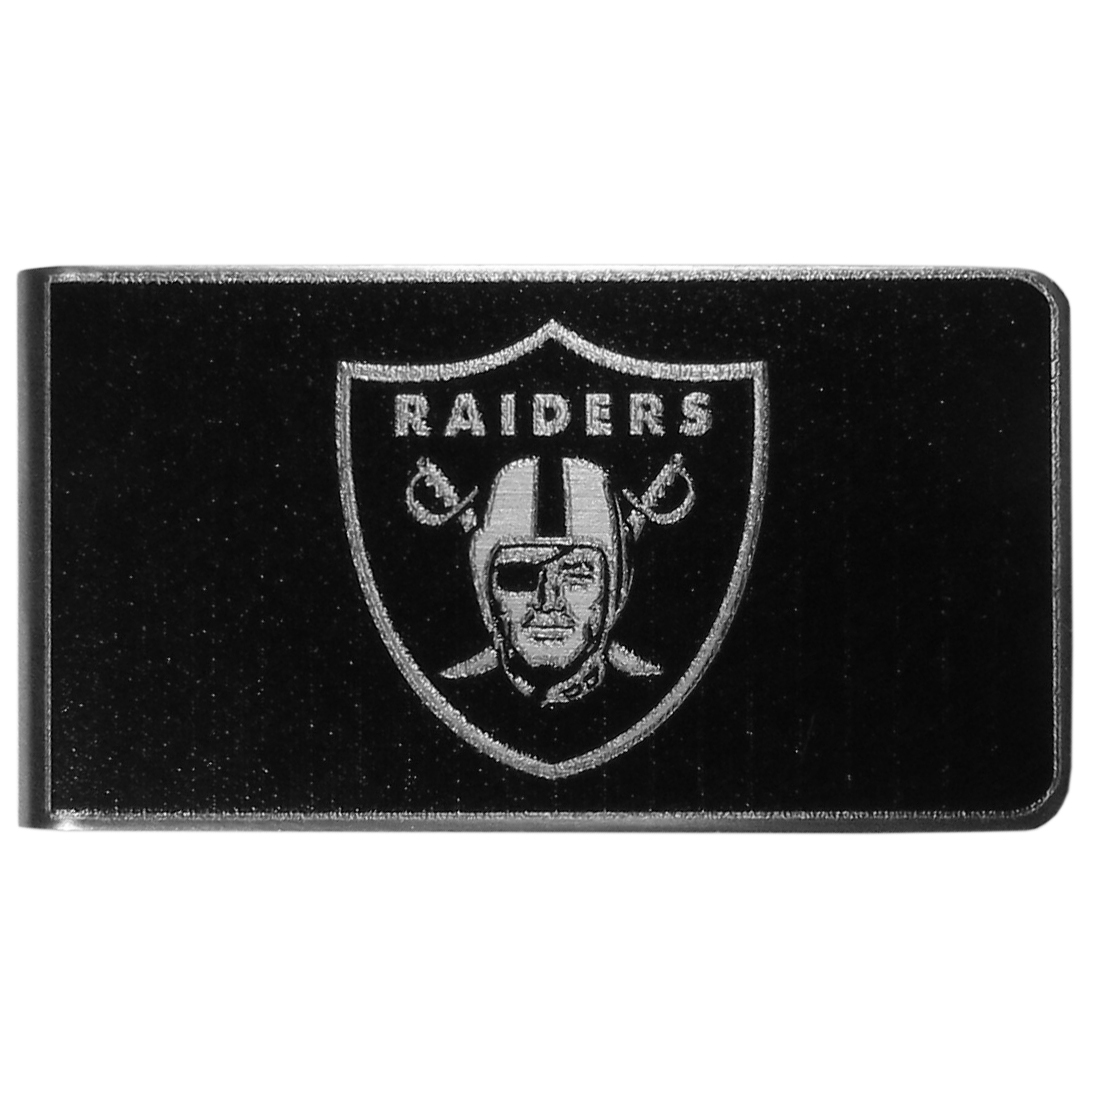 Oakland Raiders Black and Steel Money Clip - Our monochromatic steel money clips have a classic style and superior quality. The strong, steel clip has a black overlay of the Oakland Raiders logo over the brushed metal finish creating a stylish men's fashion accessory that would make any fan proud.